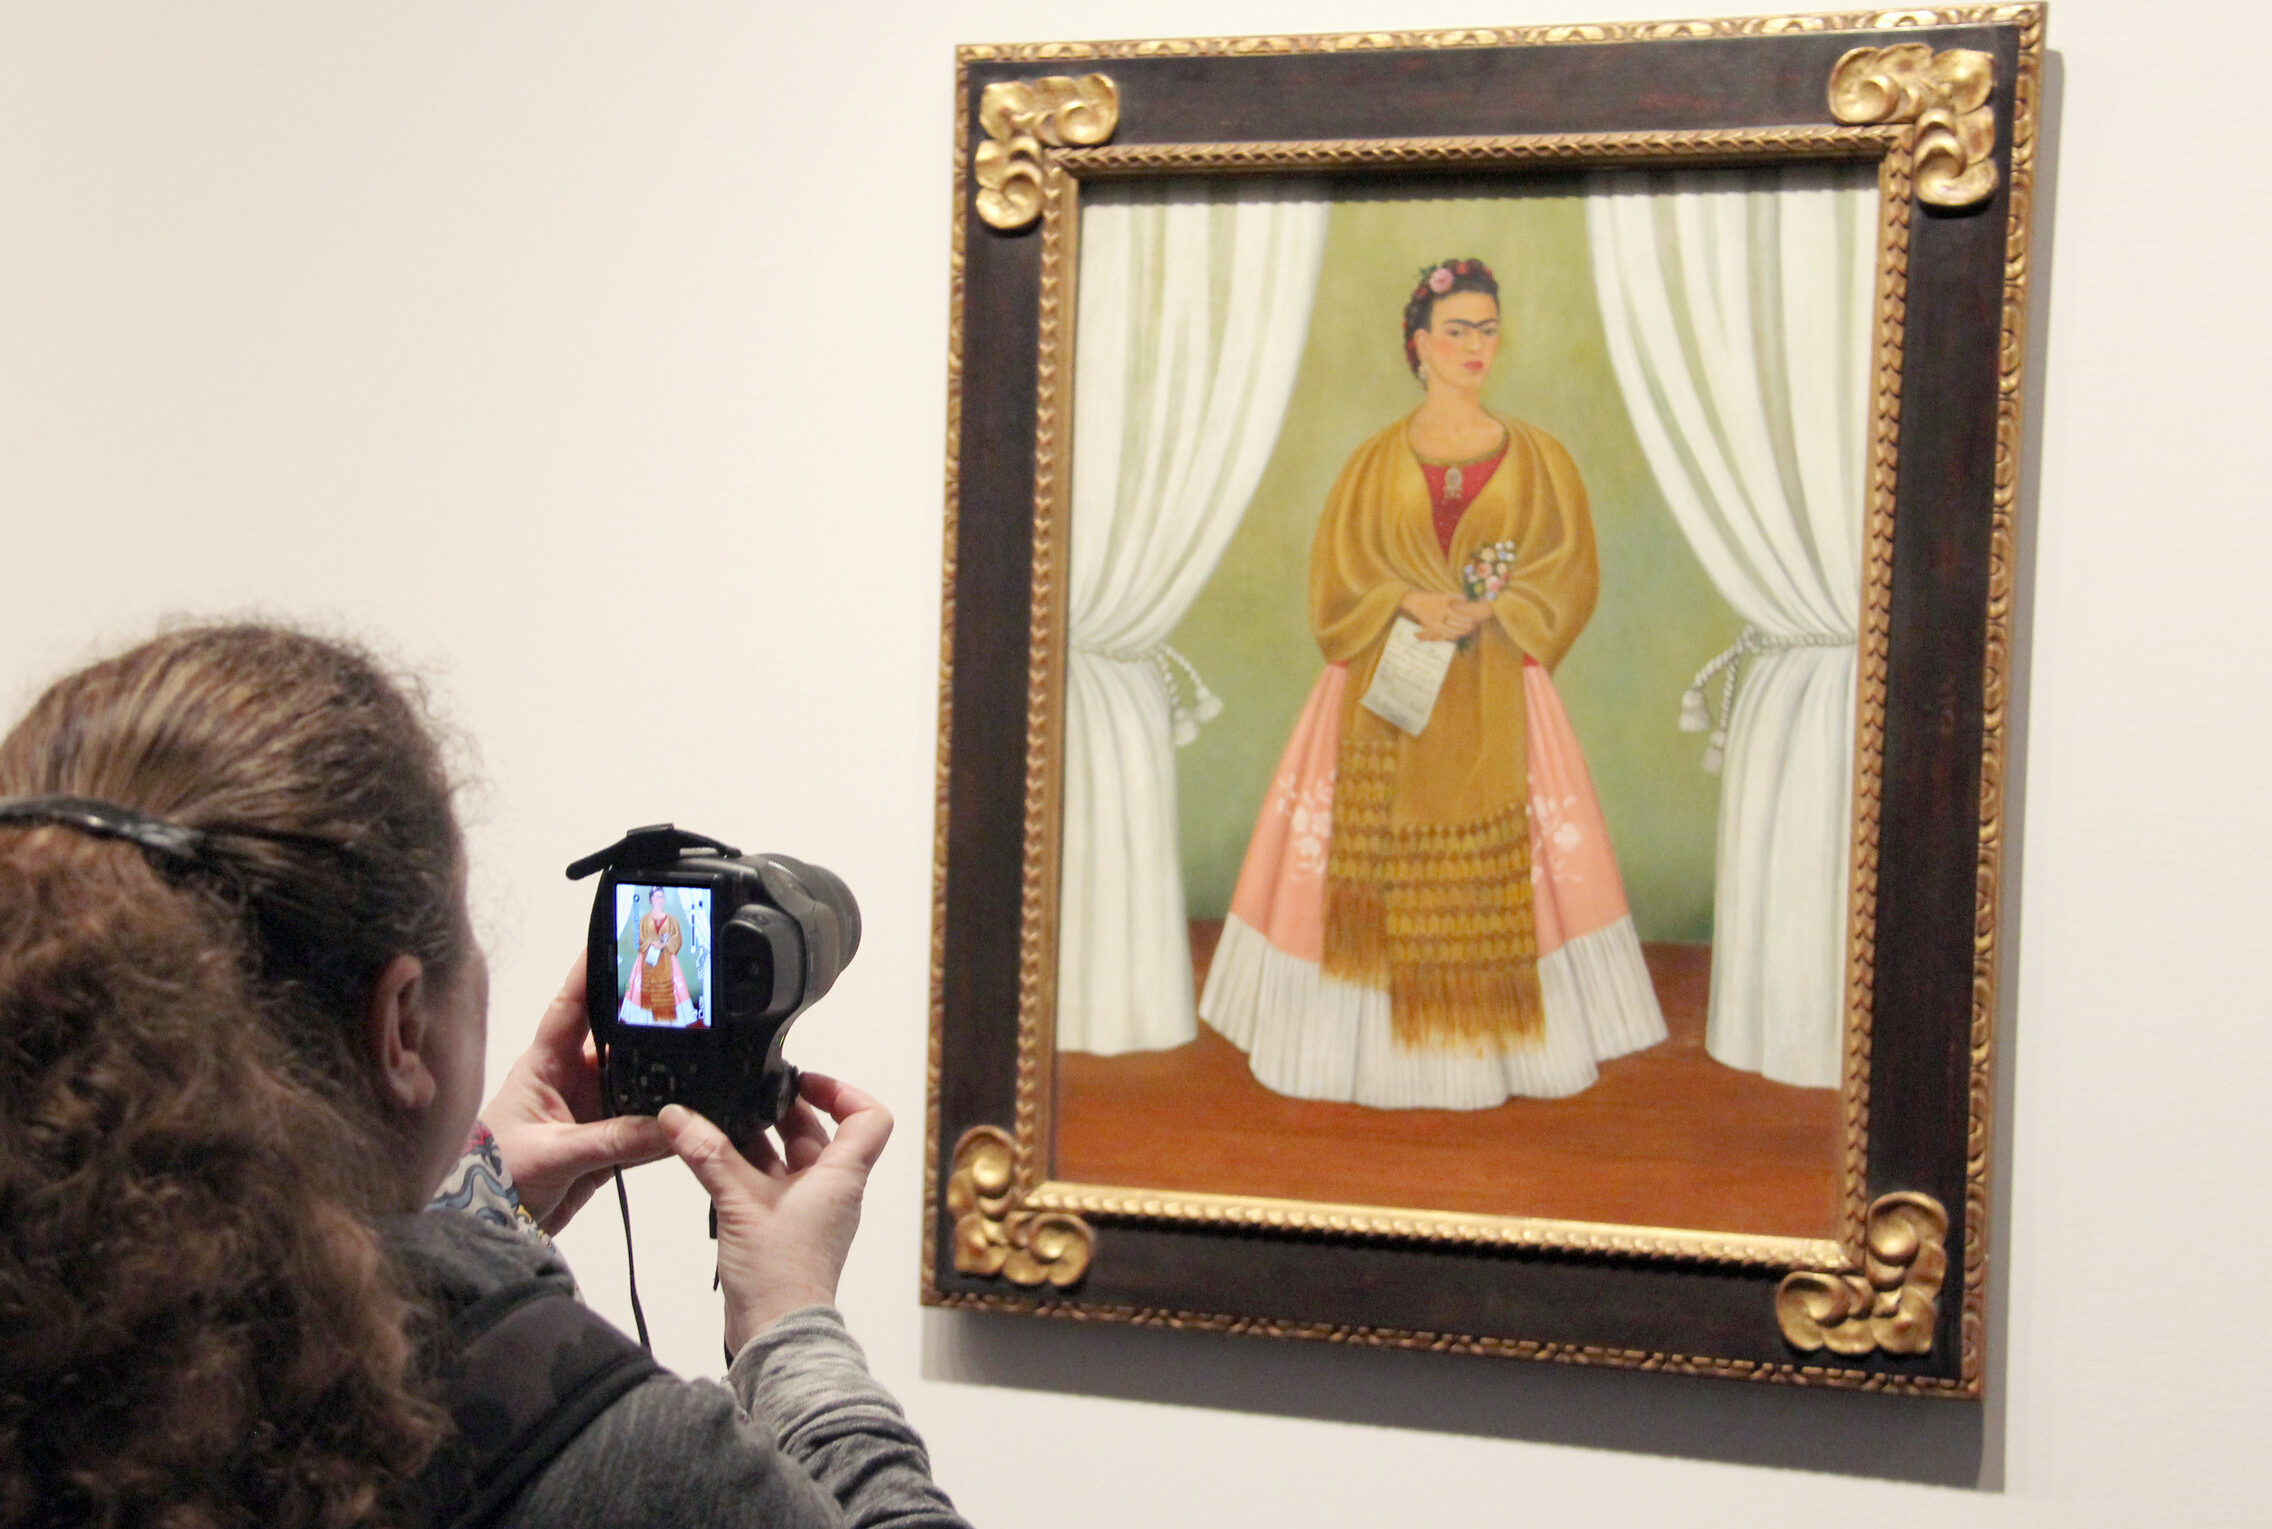 View from behind a light-skinned woman with long brown hair taking a photo of a painting of a medium-skinned woman in a dress in the museum galleries.